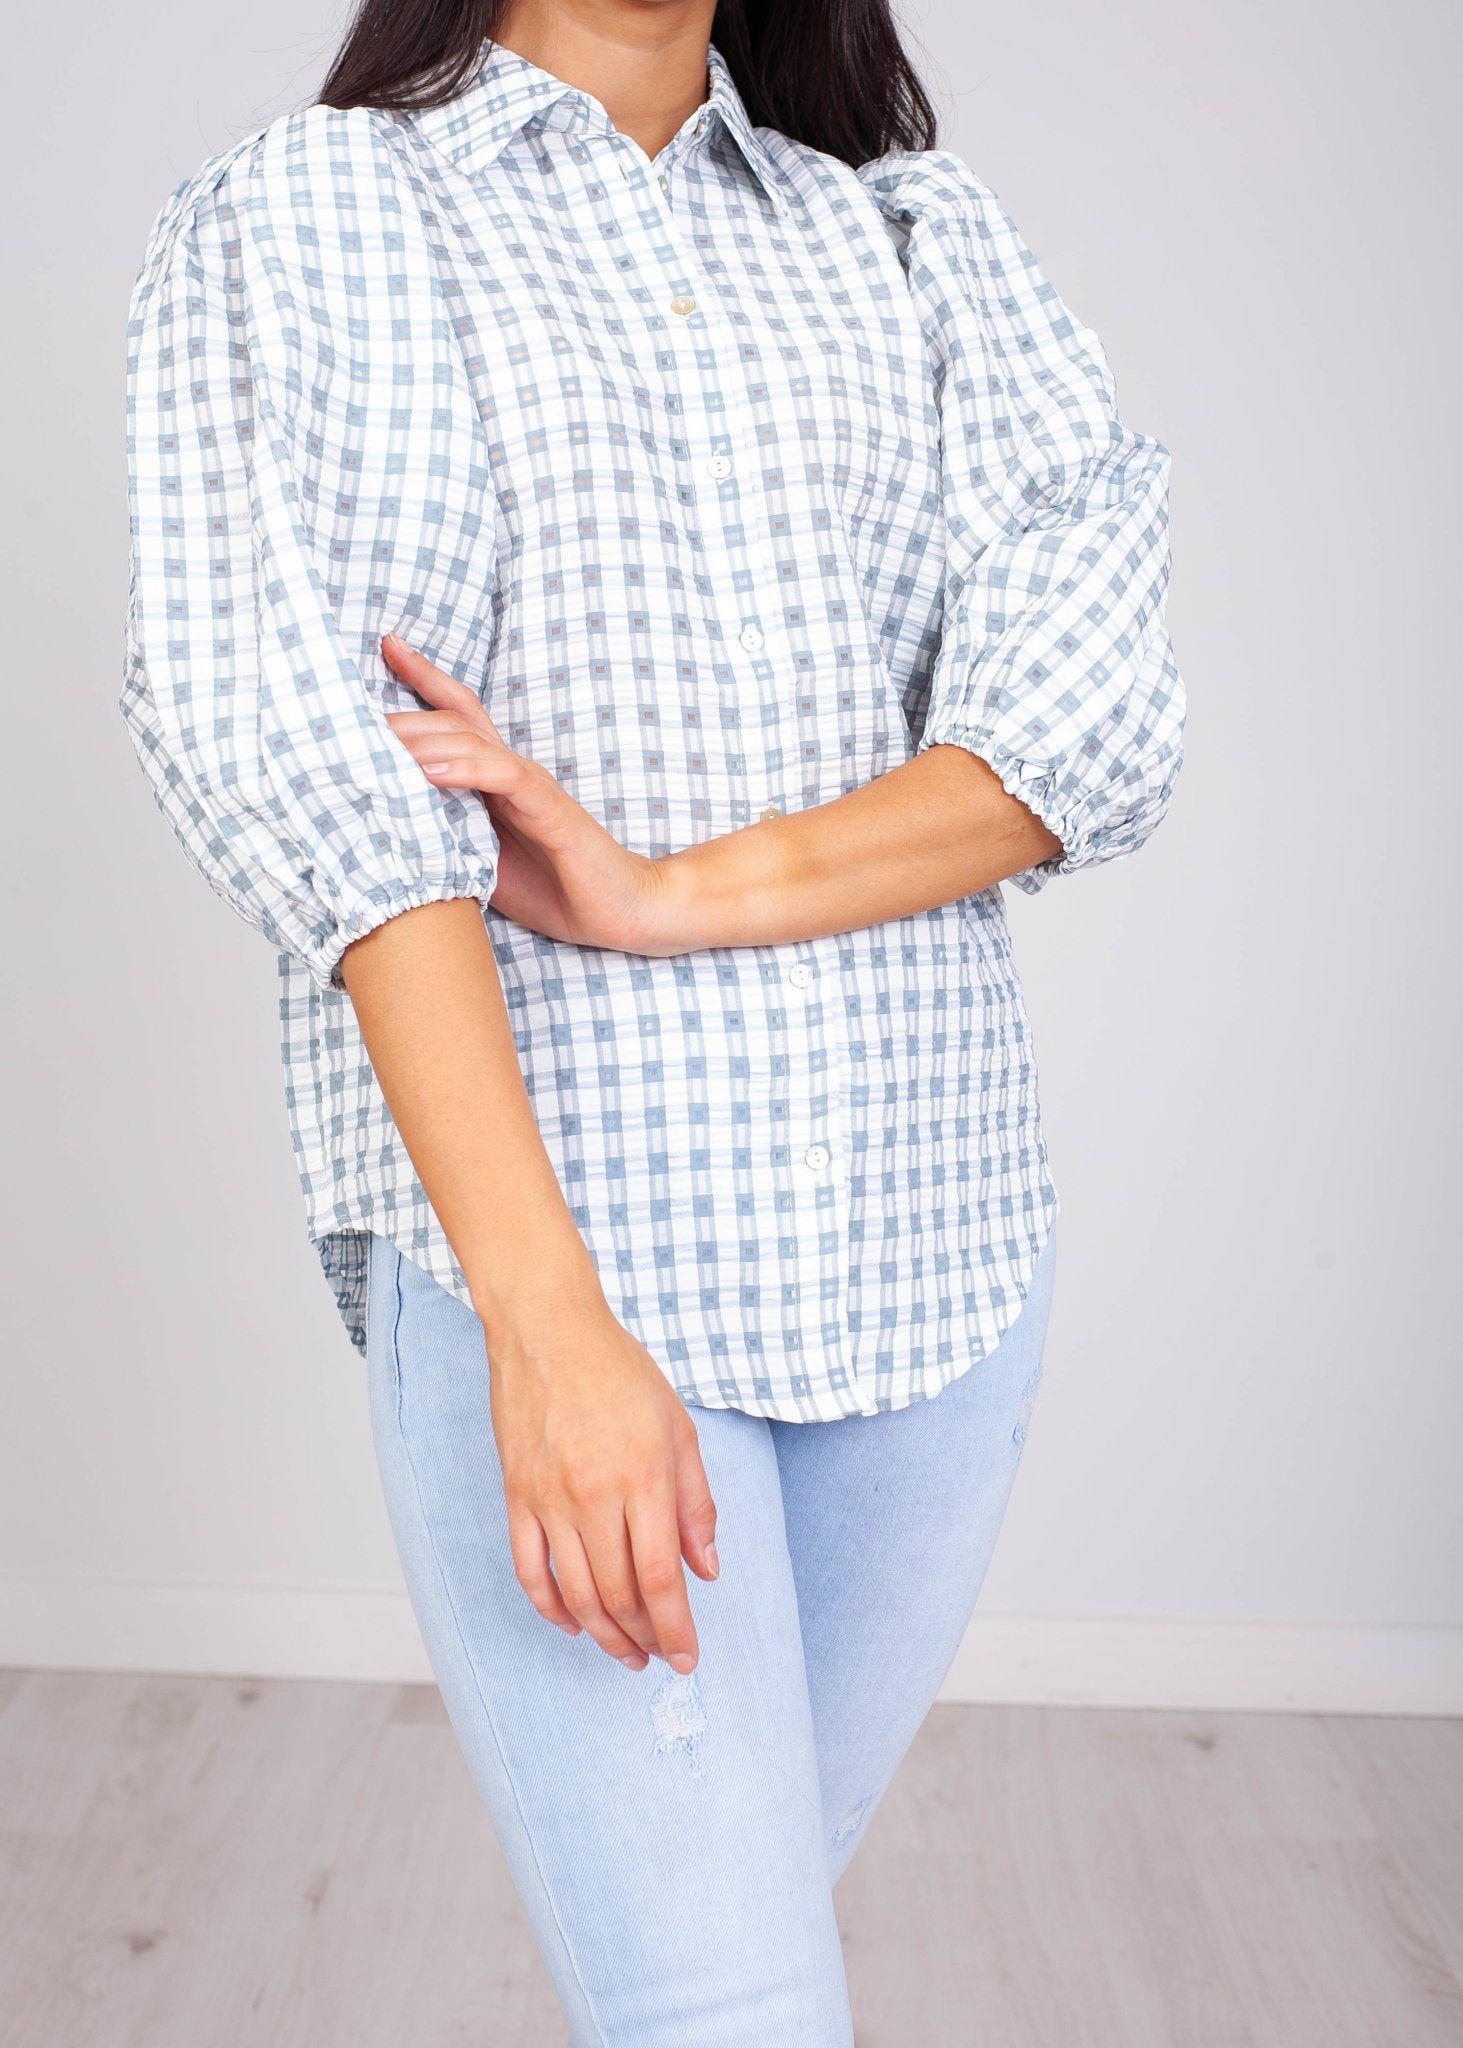 Sissy Gingham Puff Sleeve Blouse - The Walk in Wardrobe